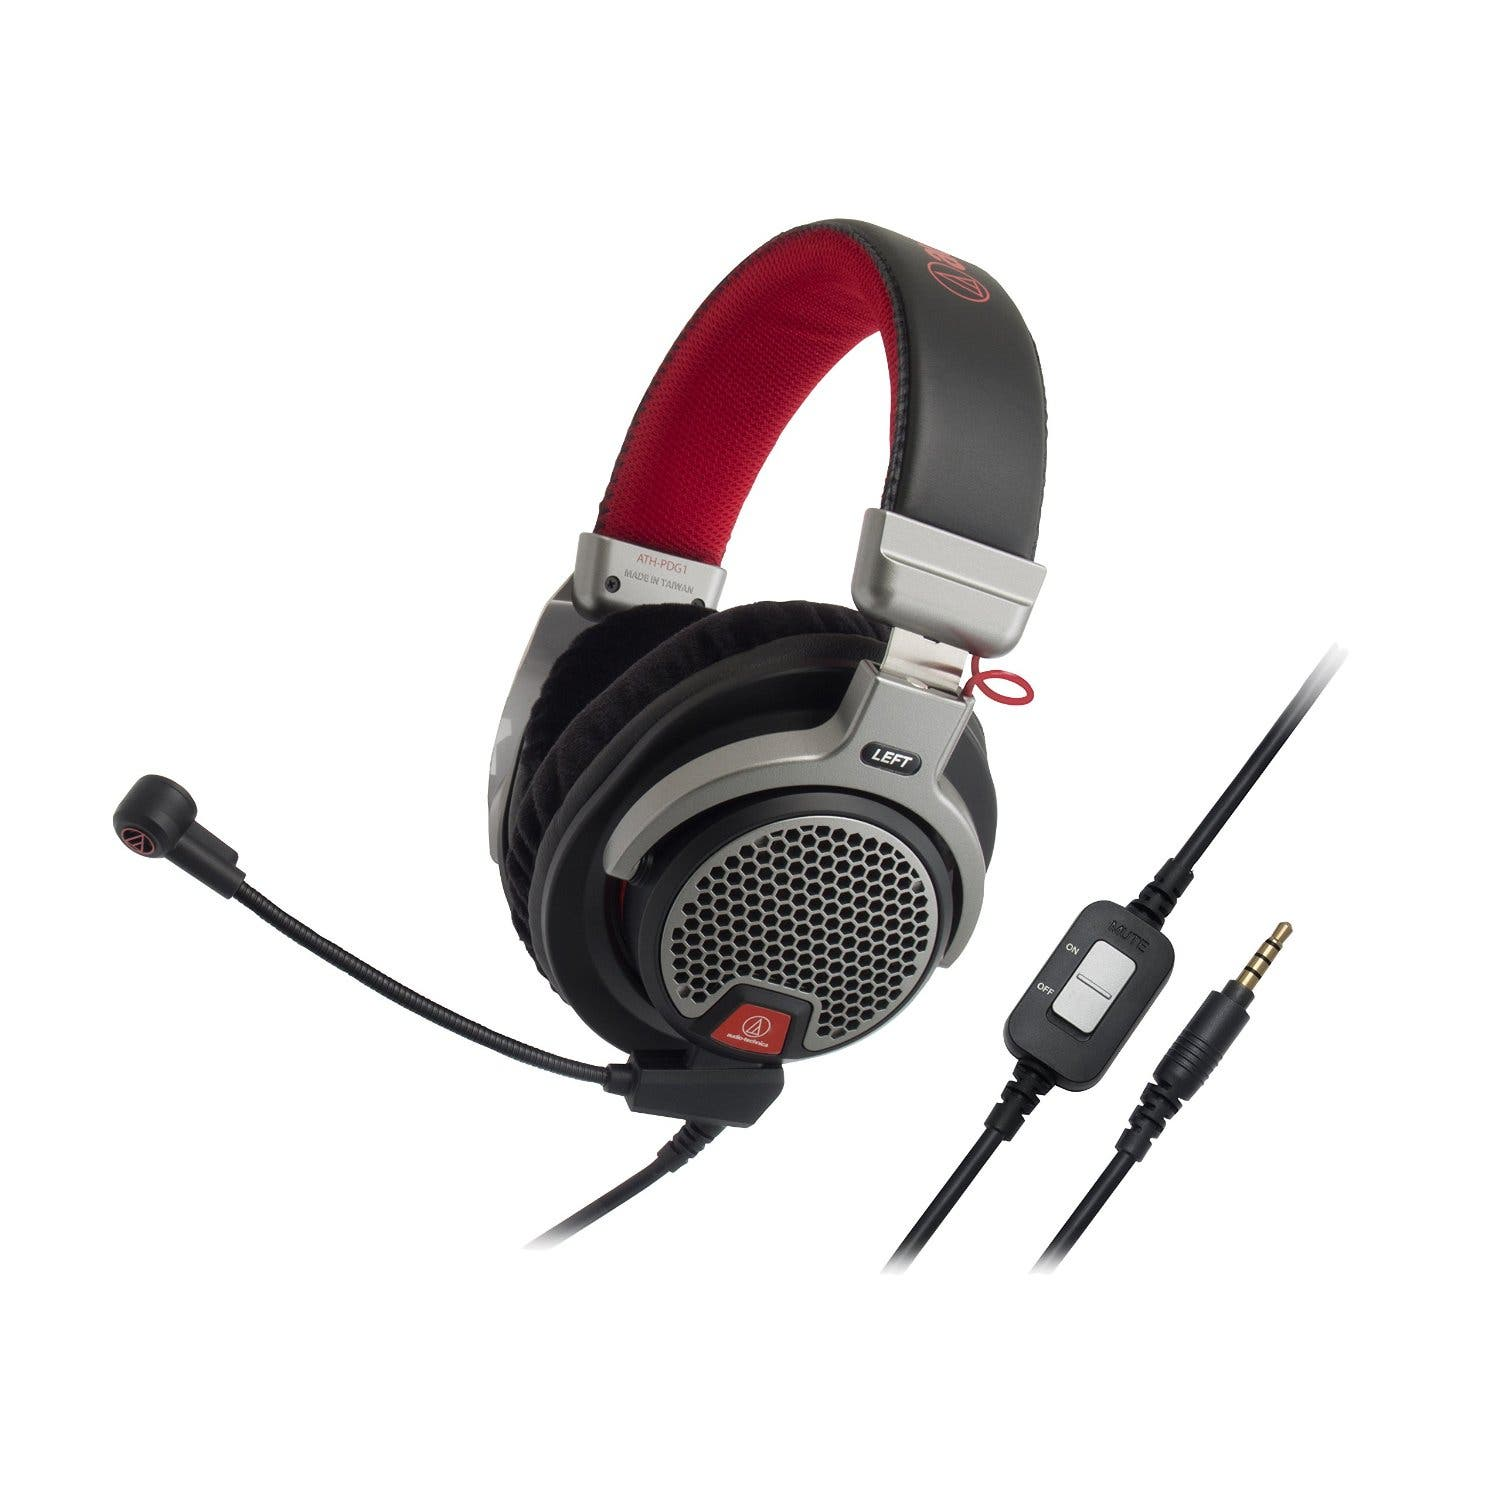 now headphone in bloc lux headphones available are ferrari sleek gold galvanize k rose roc deluxe promo